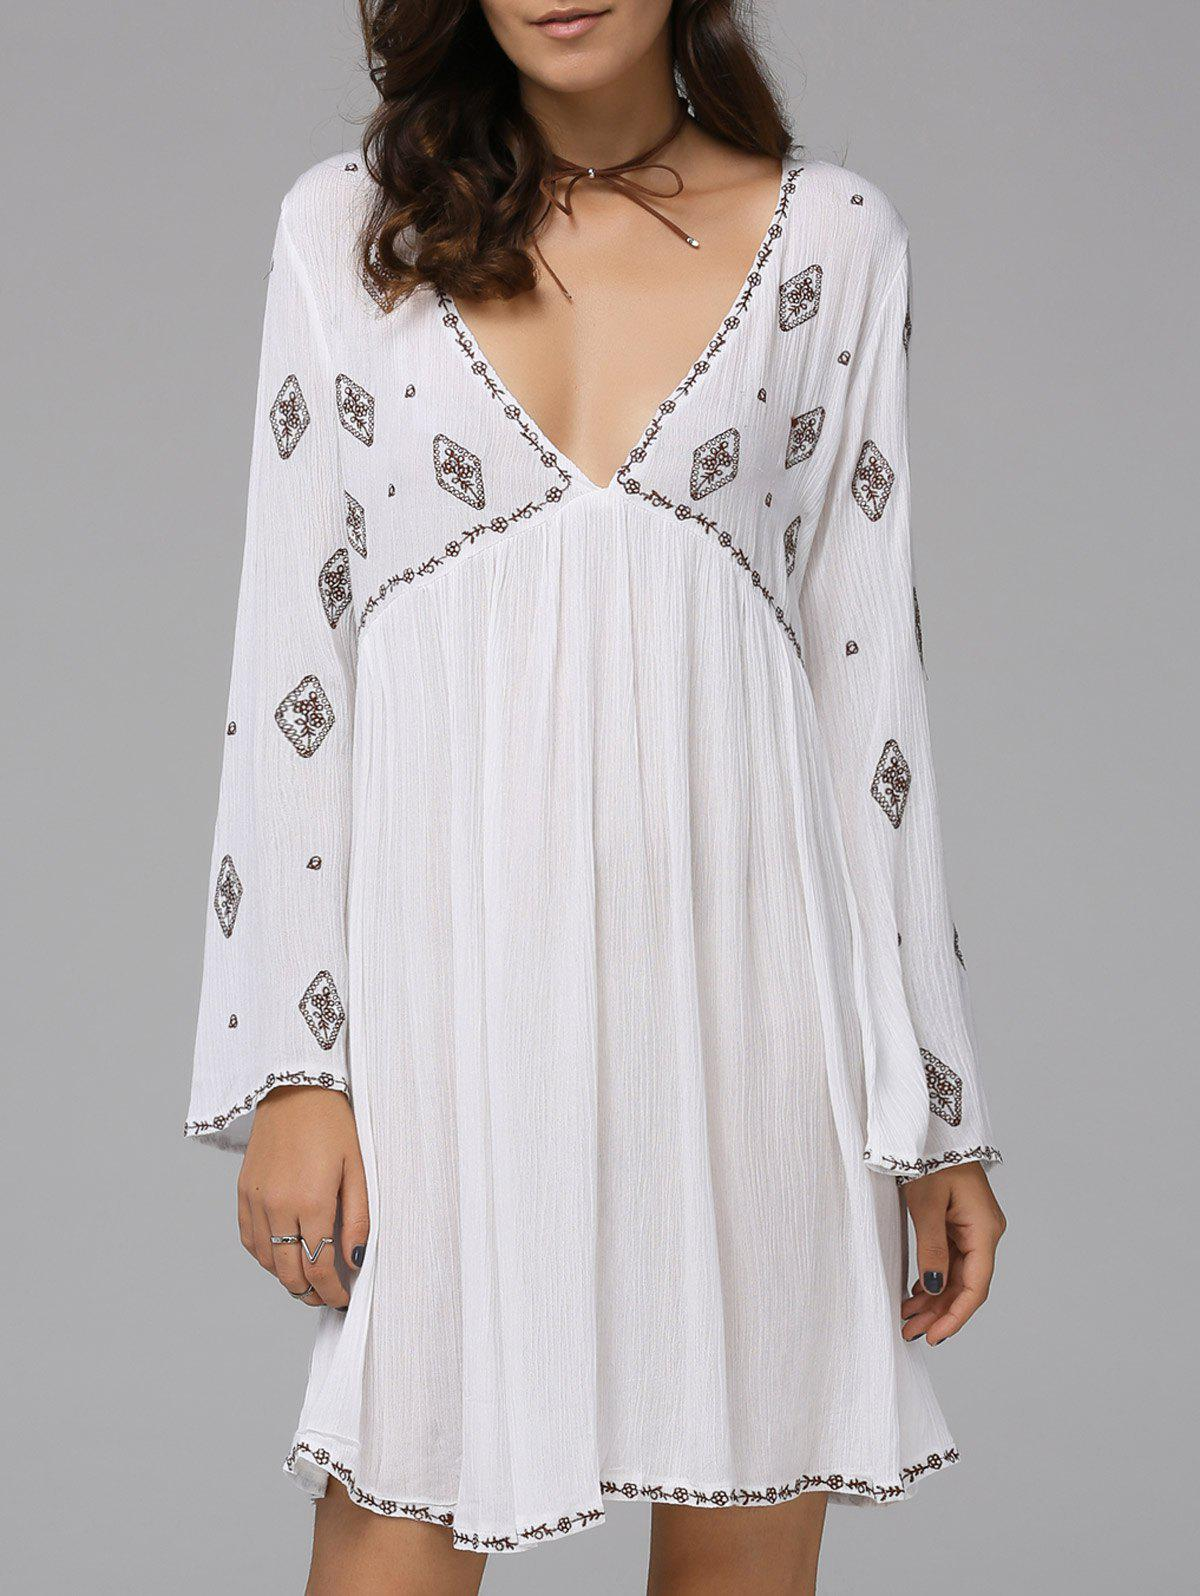 Fashionable Women's Plunging Neck Long Sleeve Embroidered Dress - L WHITE